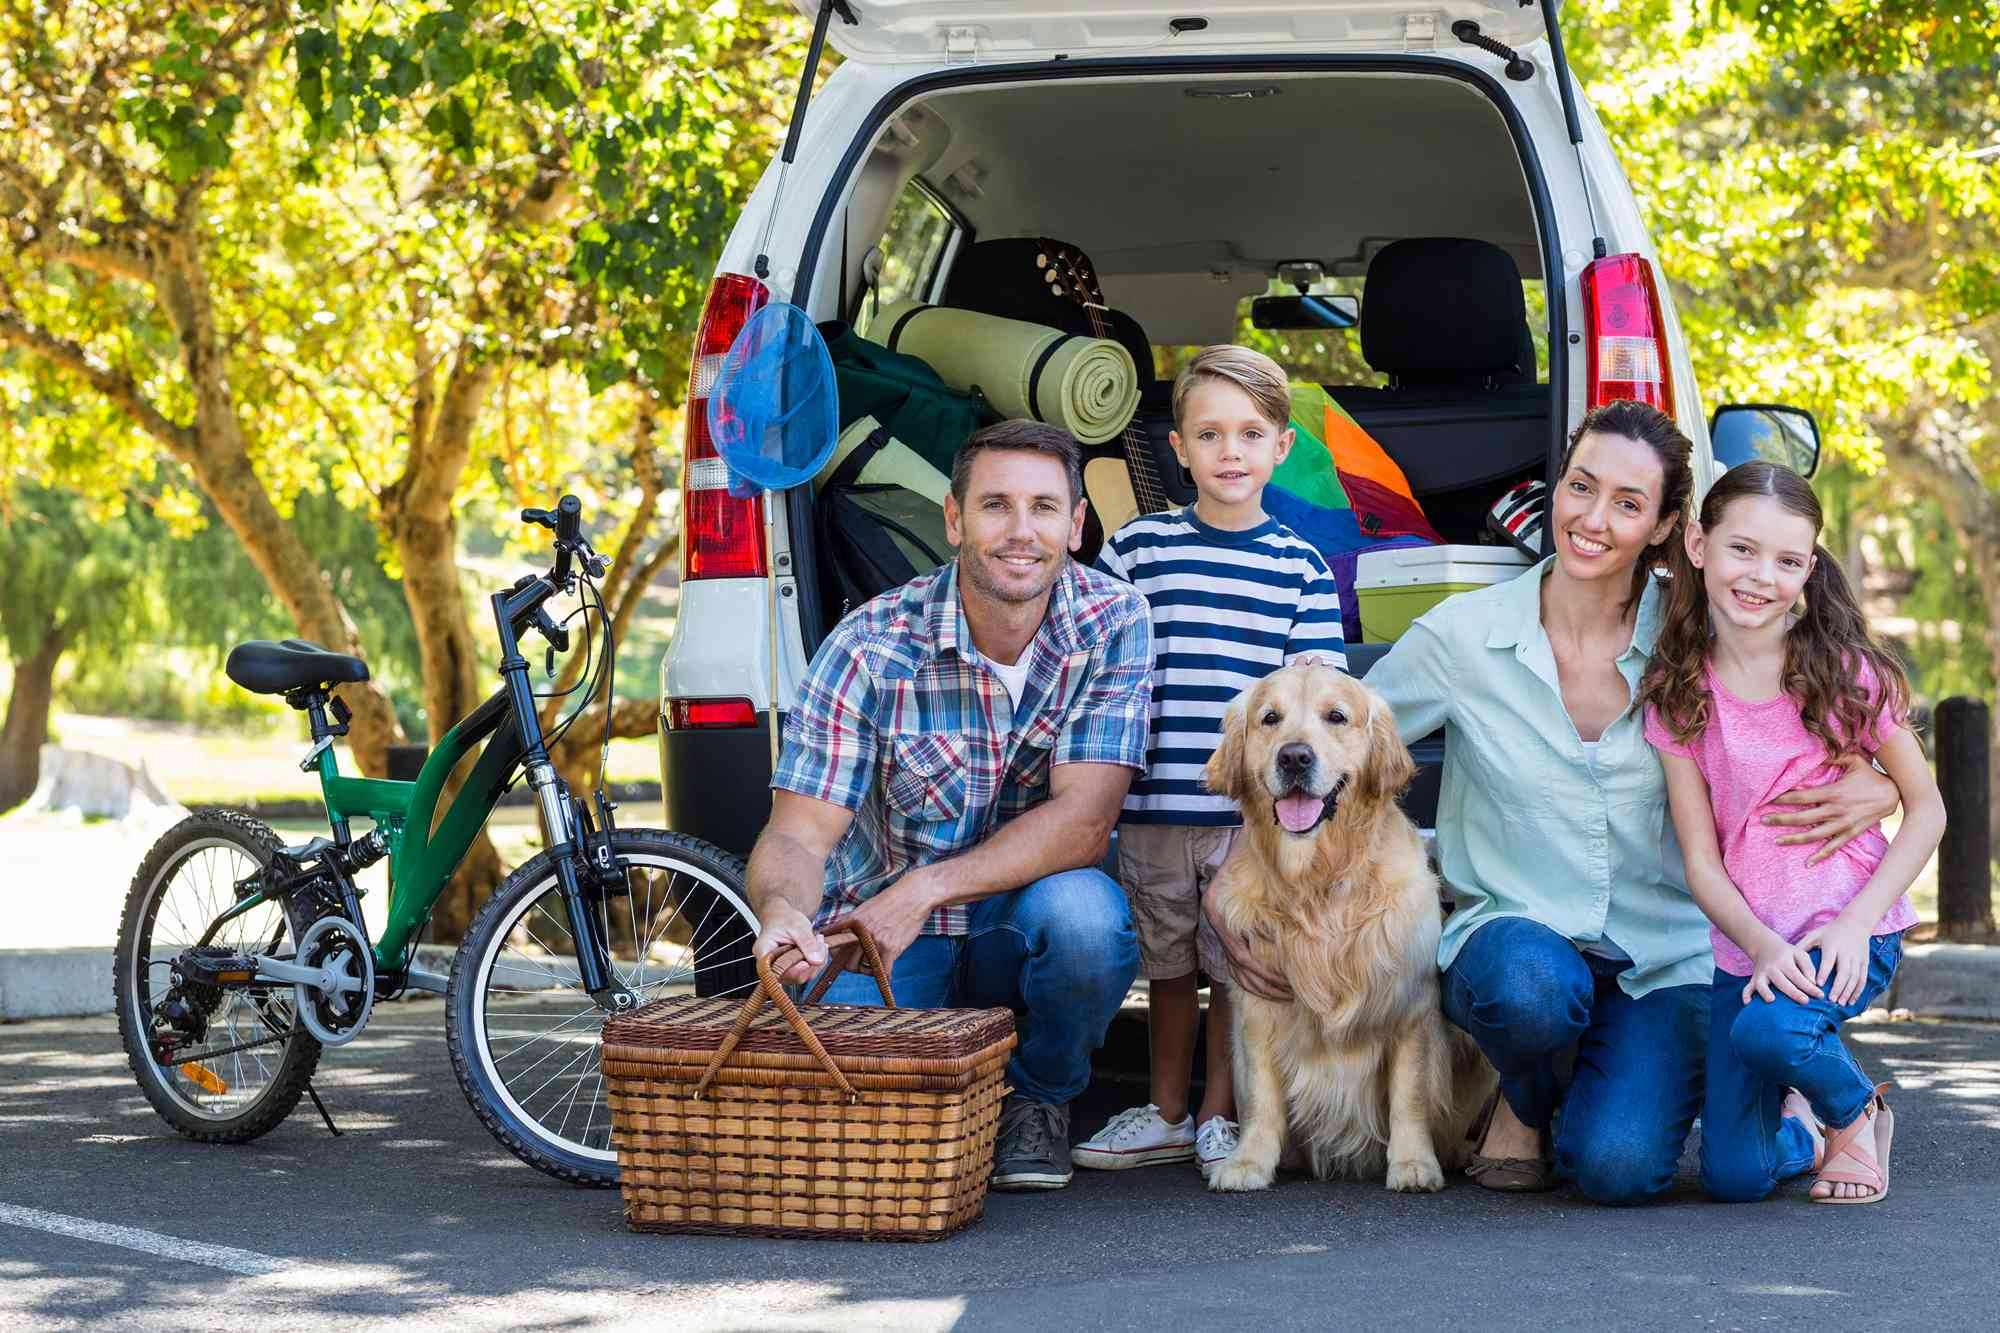 Image   caucasian family smiling together in front of vehicle